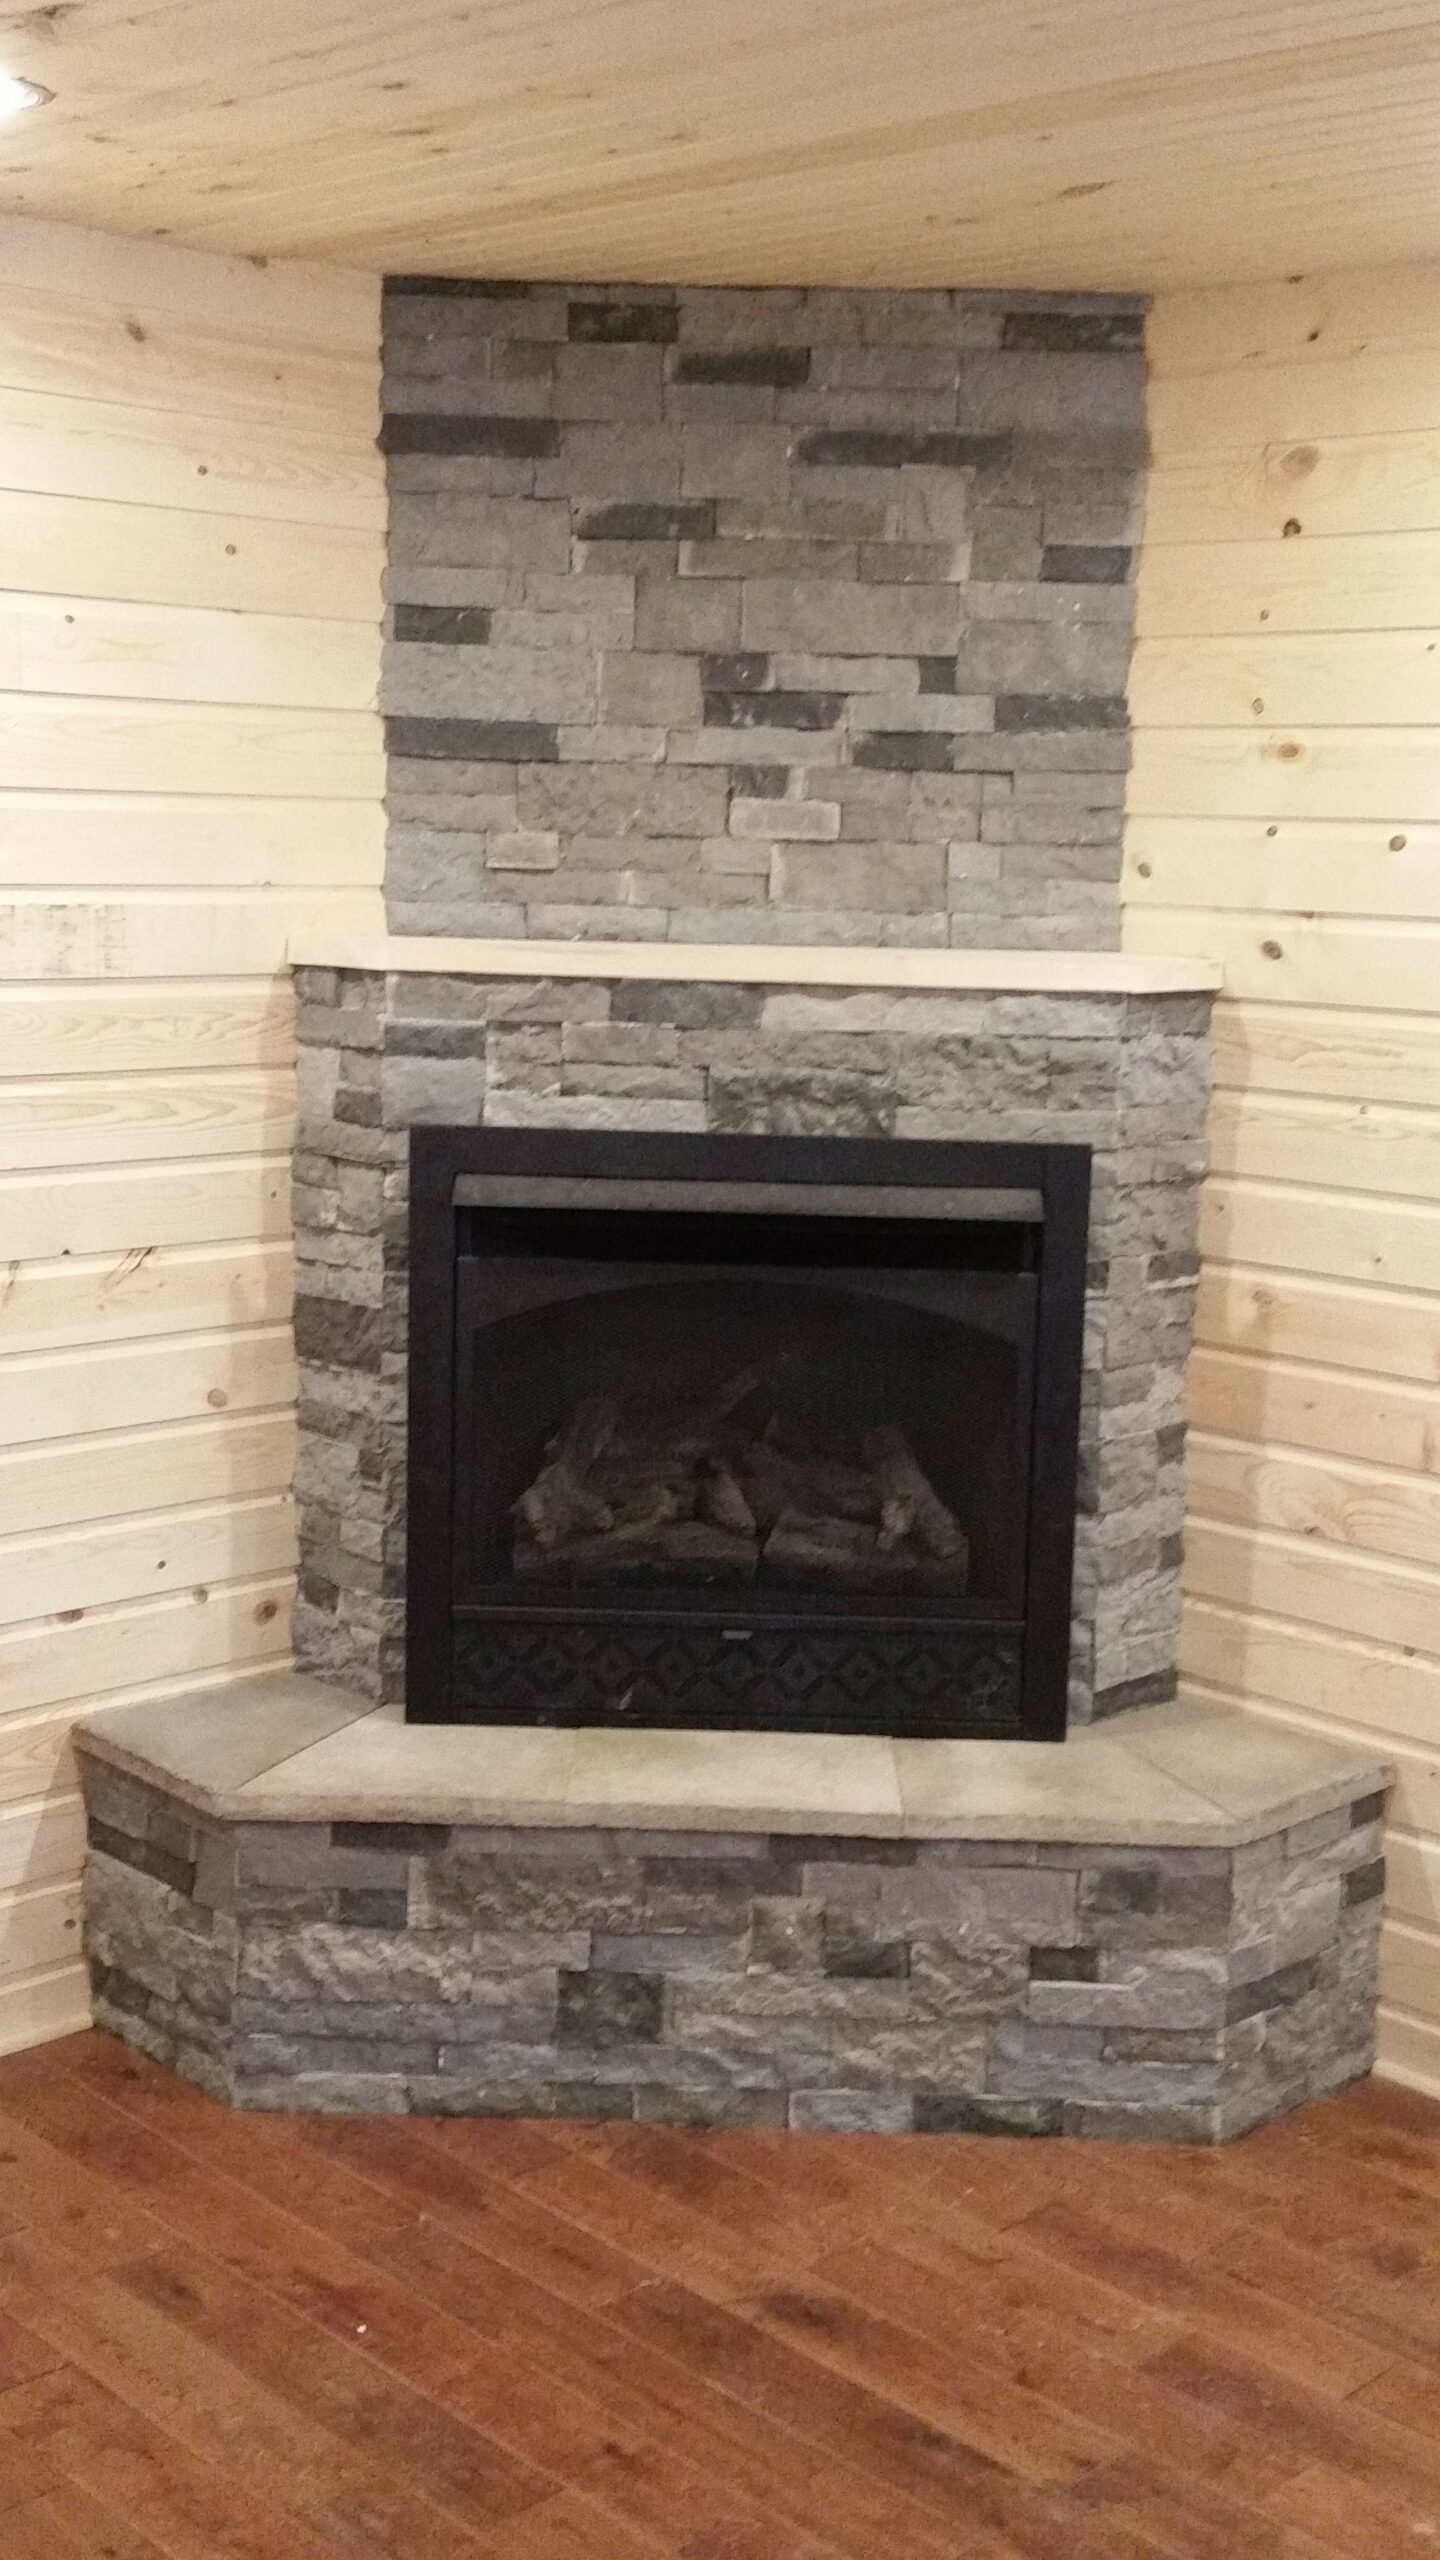 76 Stone Fireplaces The Hearth Is The Heart of The Home 53